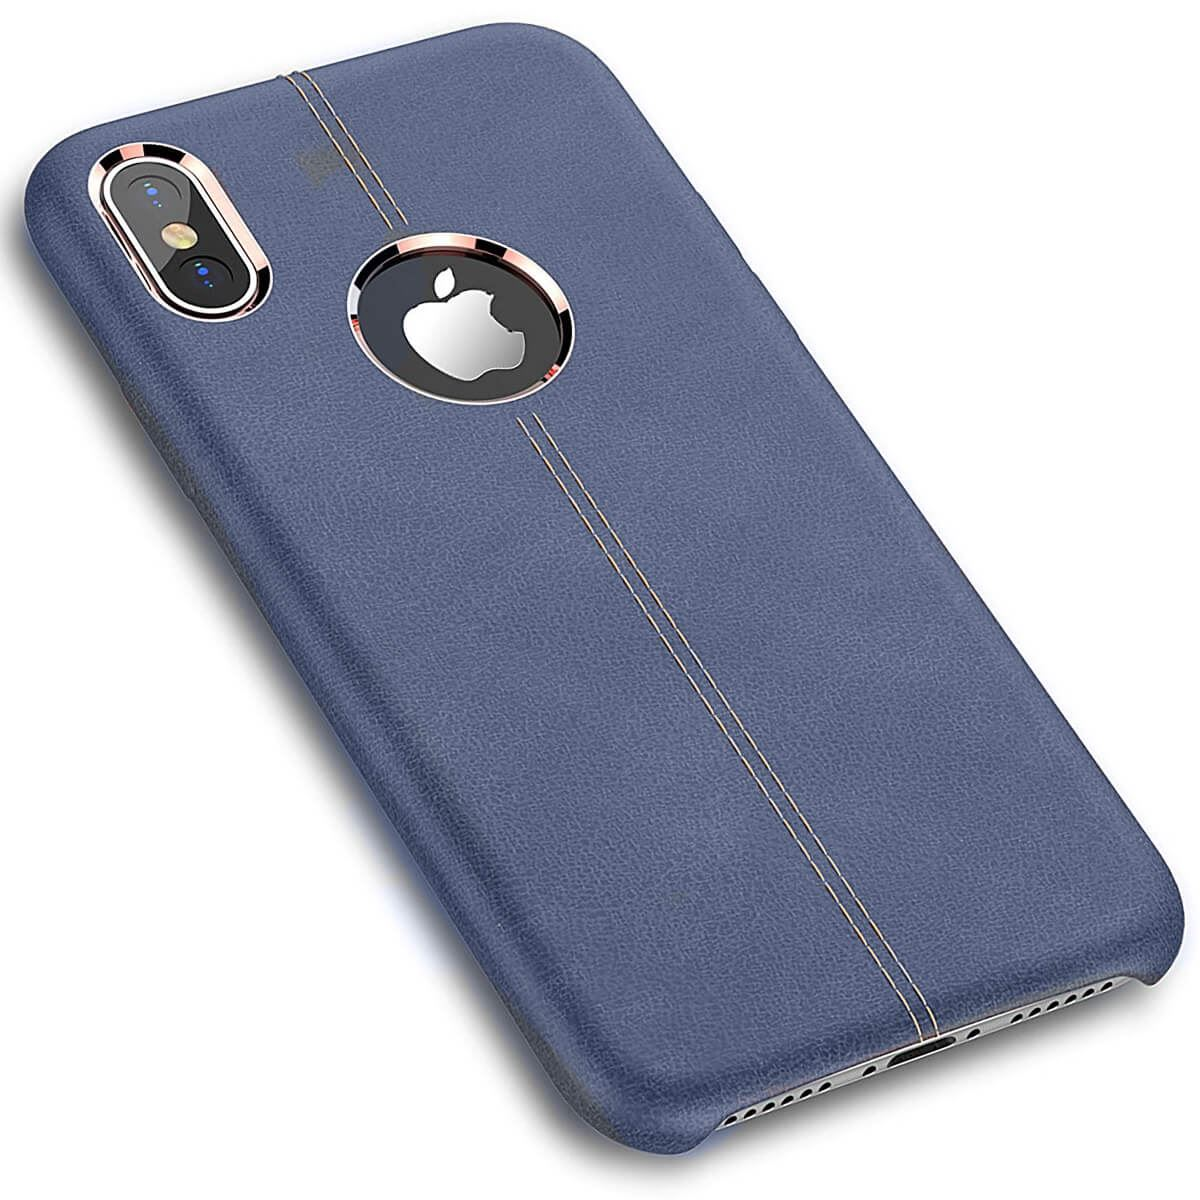 Rugged-Thin-Case-Skin-For-Apple-iPhone-10-X-8-7-Plus-6s-Genuine-Leather-Cover thumbnail 7